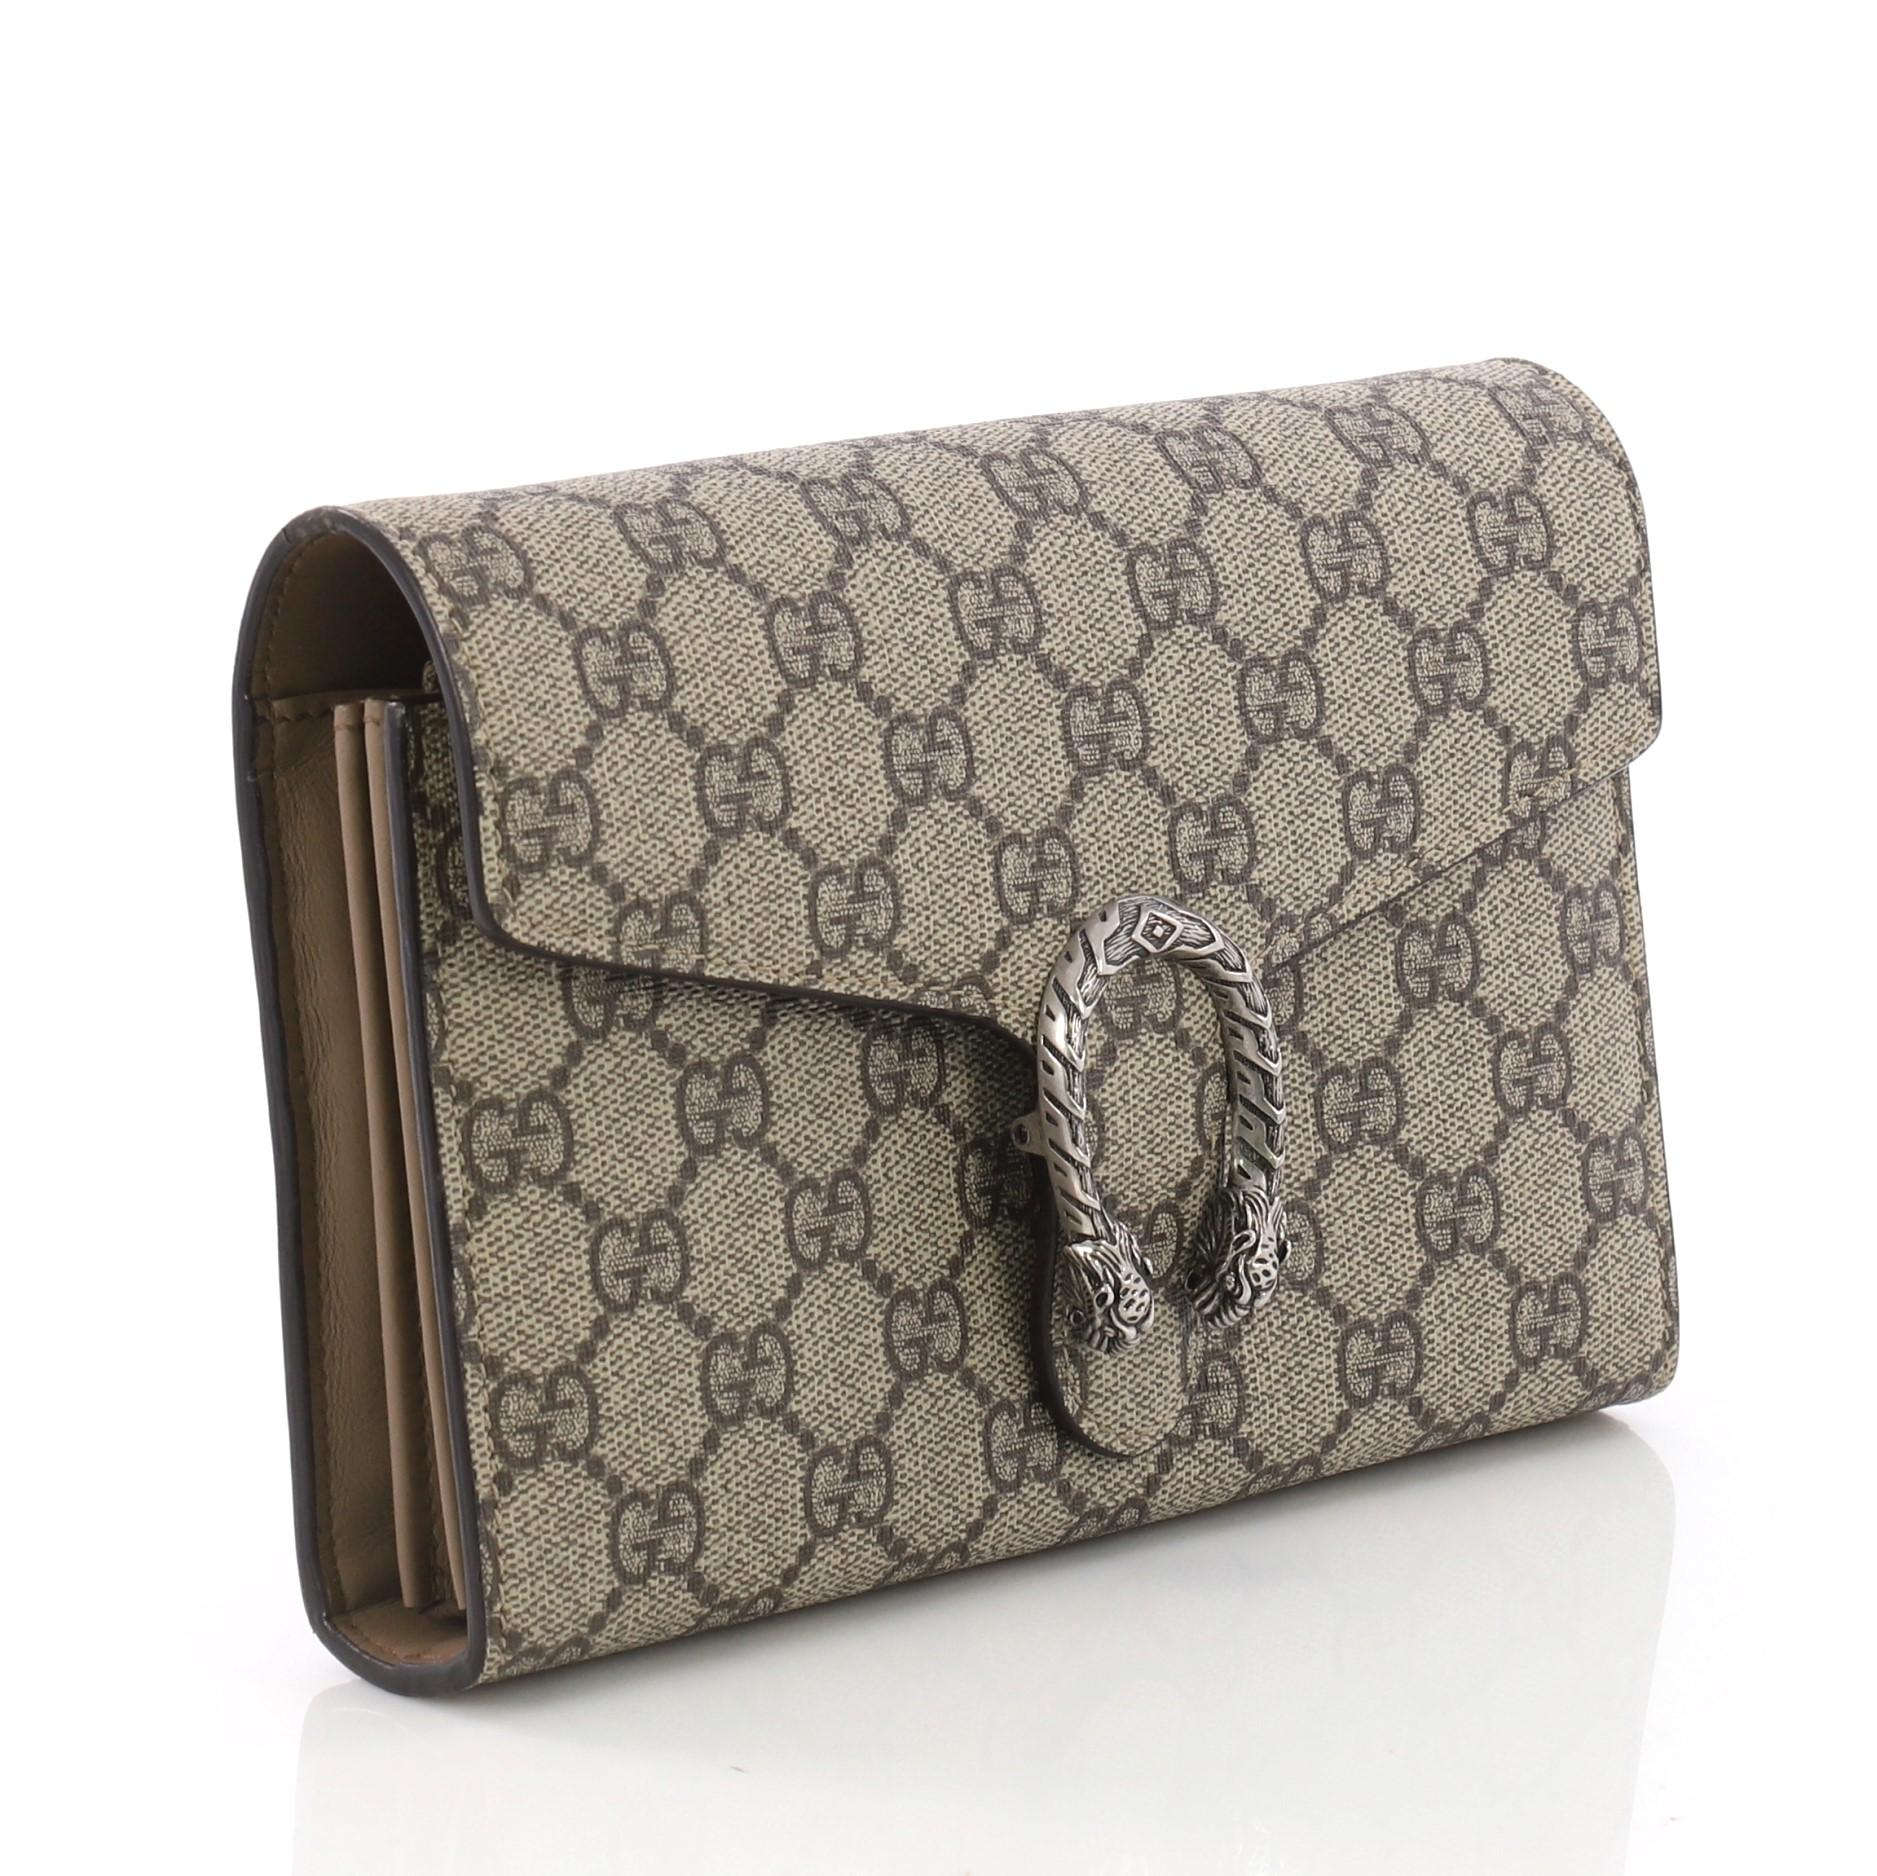 69784a5c72d Gucci Dionysus Chain Wallet GG Coated Canvas Small at 1stdibs